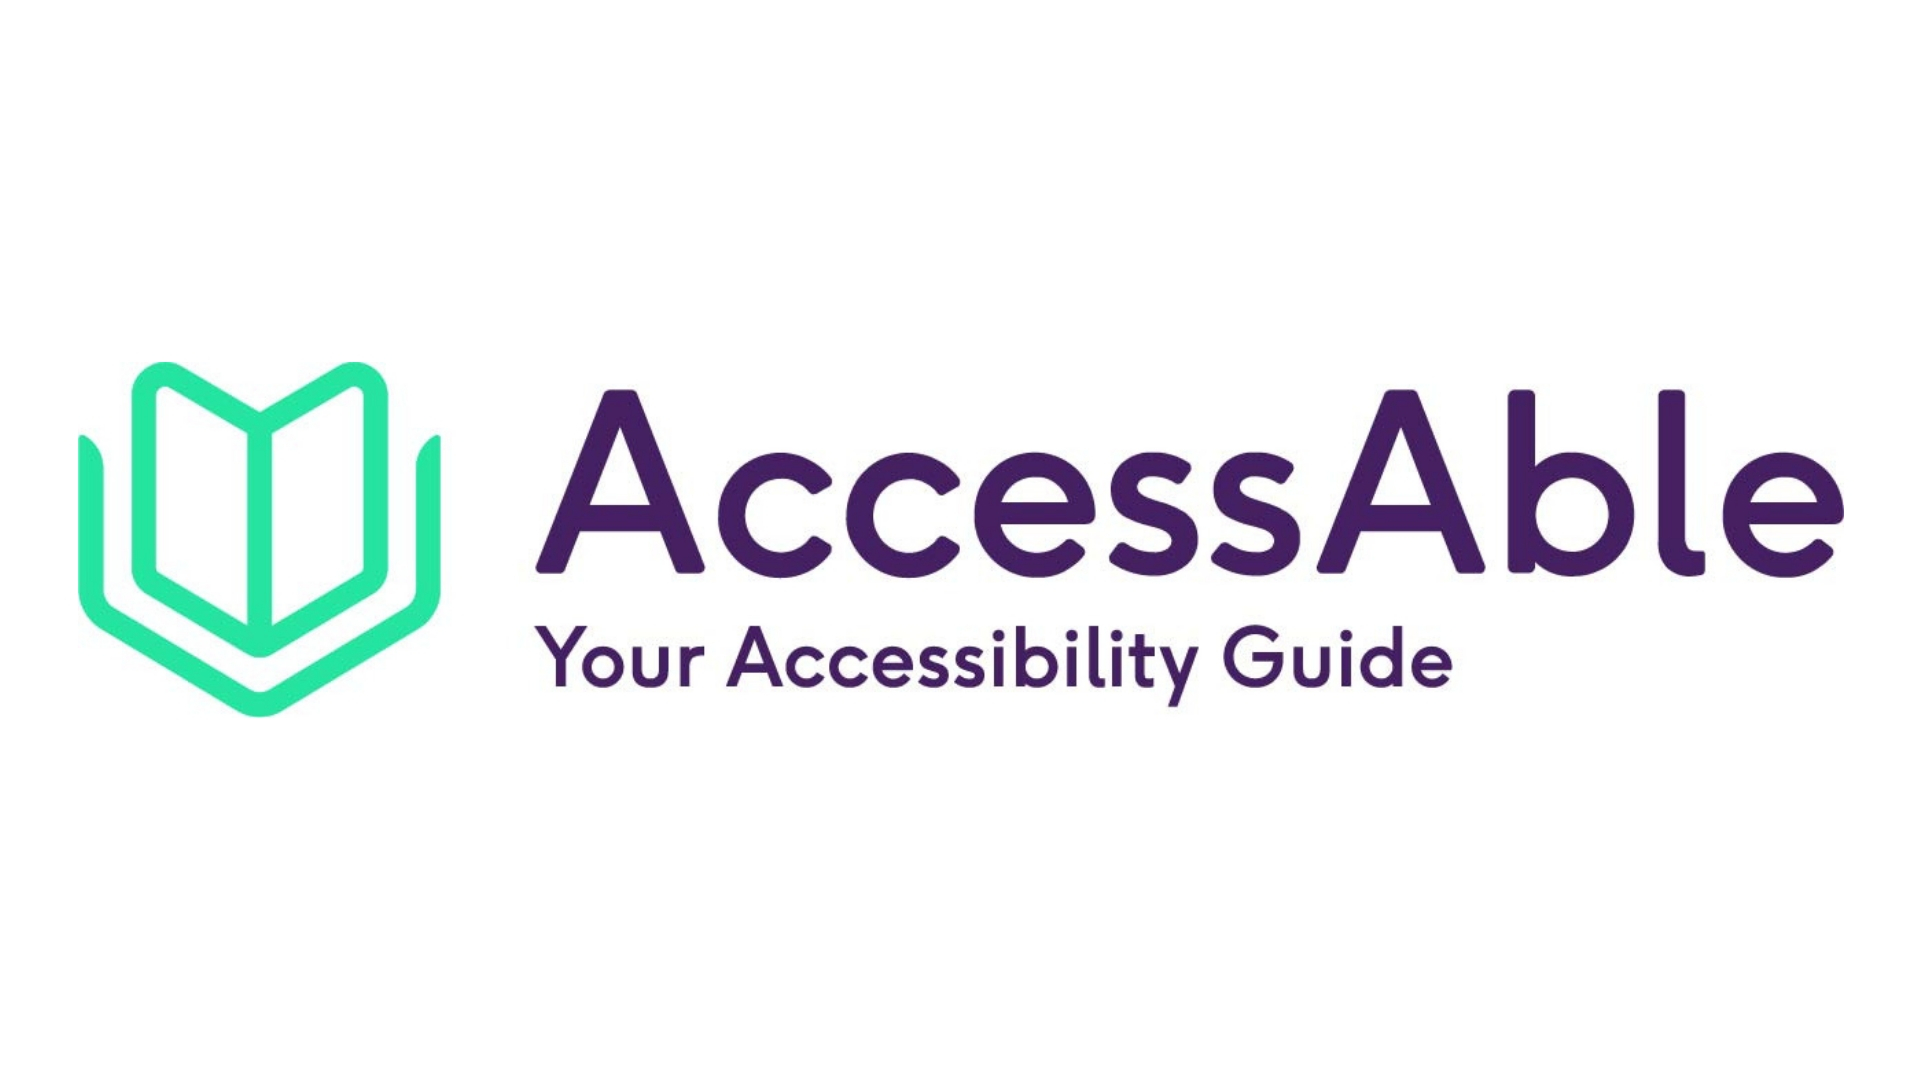 Find out information about accessible attractions in London with AccessAble: Your Accessibility Guide